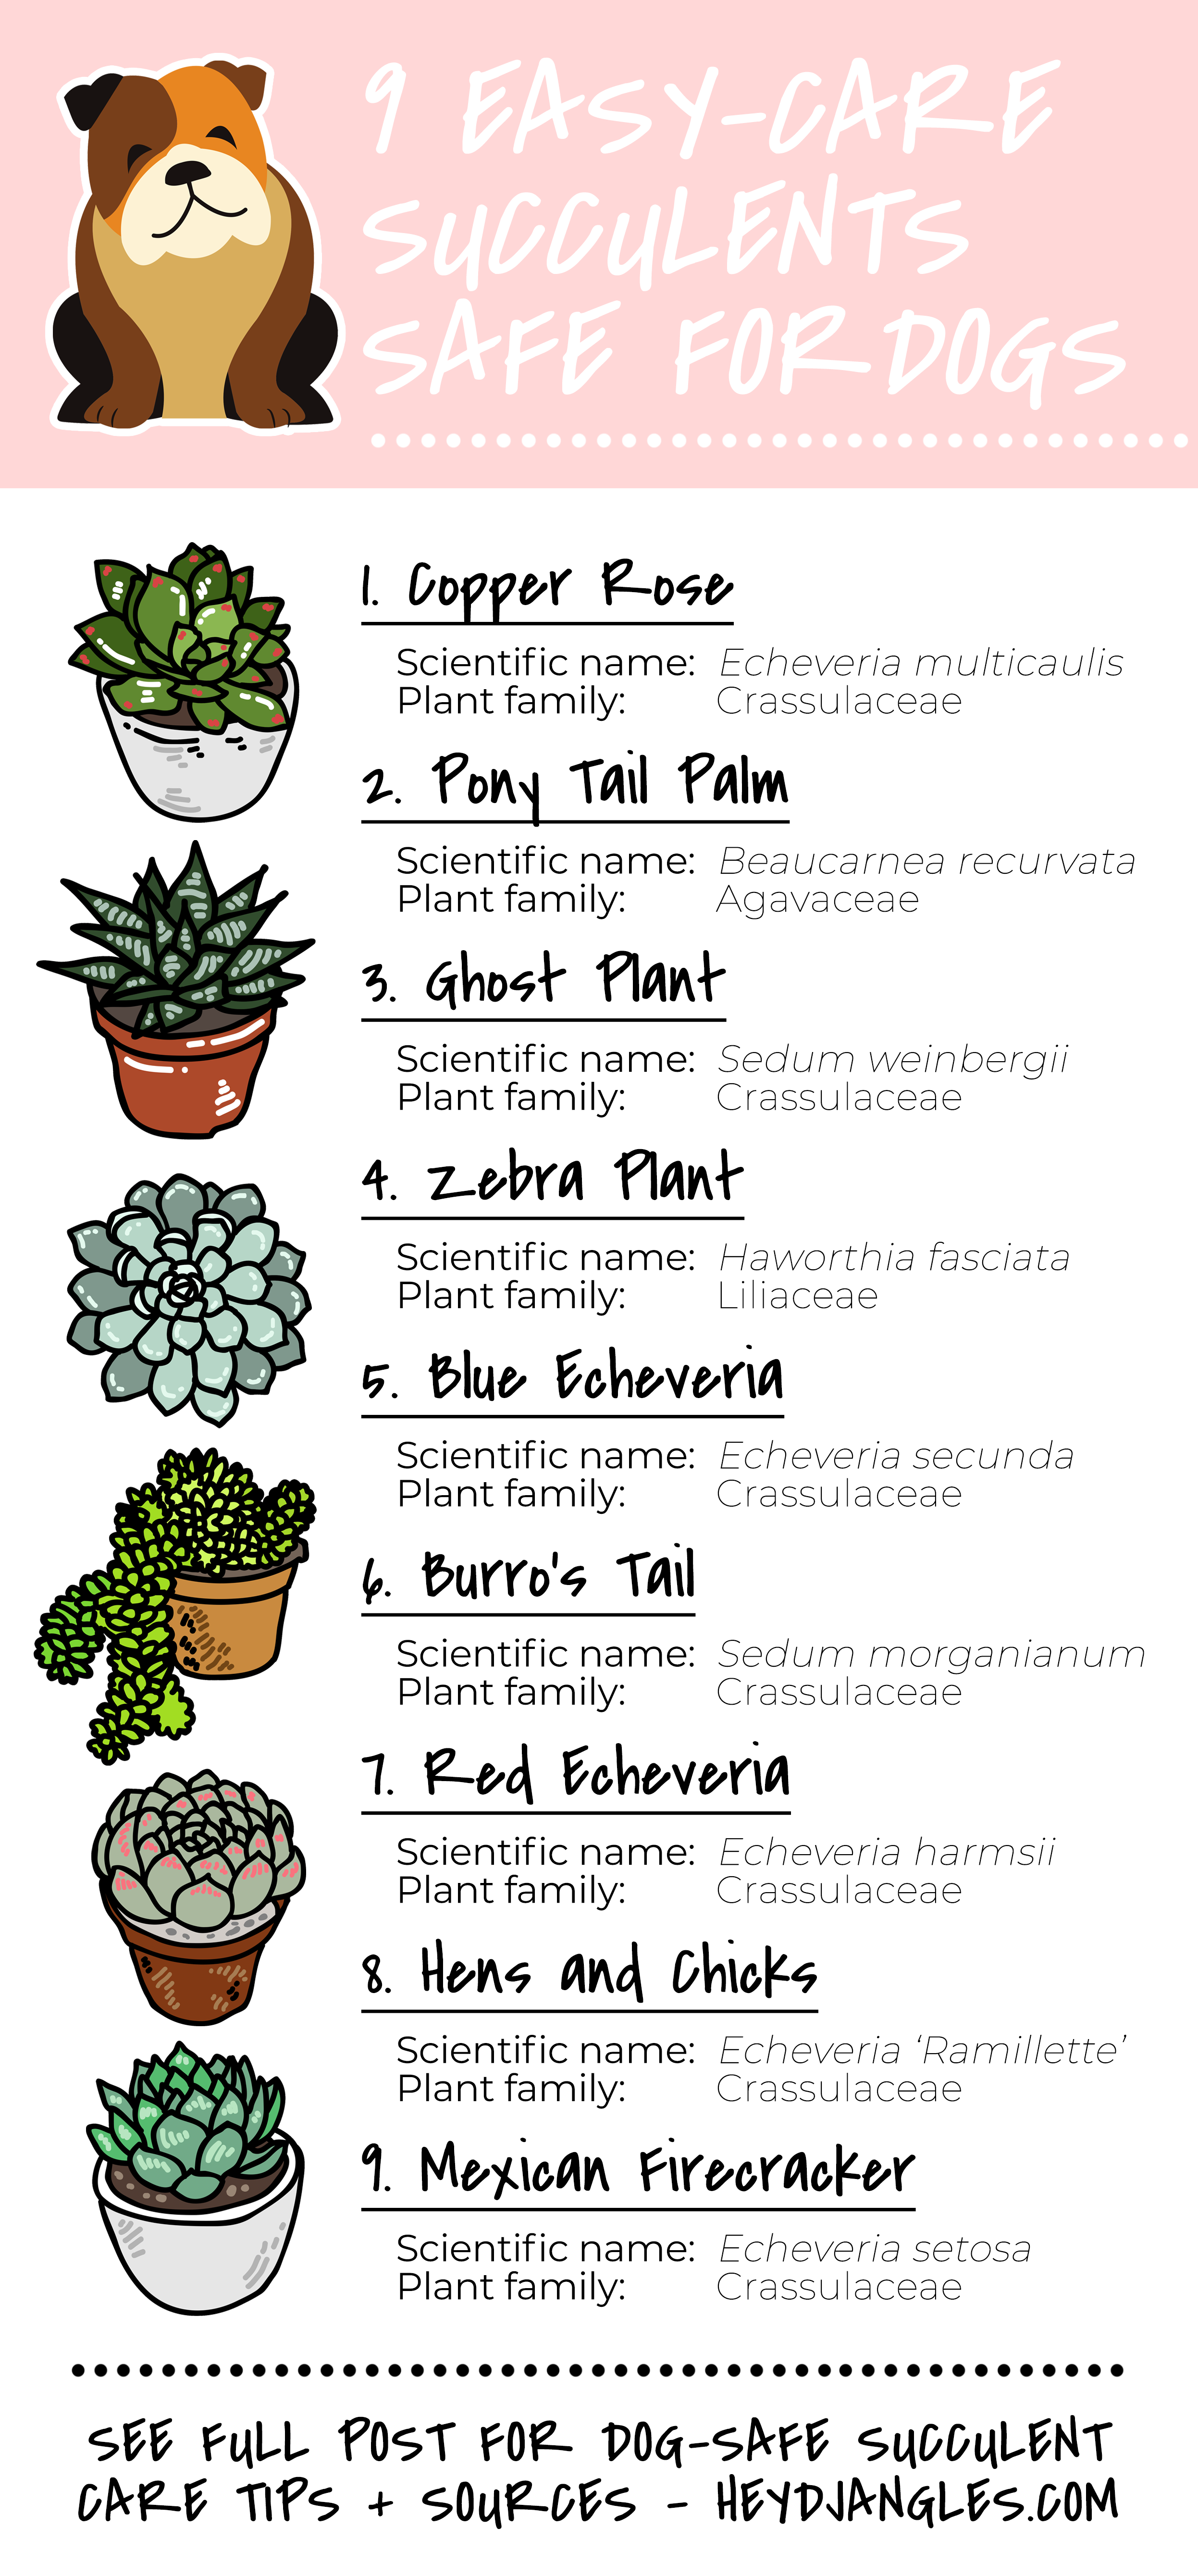 9 Low-Maintenance Indoor Succulents That Are Safe For Dogs - Hey, Djangles. Pet-friendly succulent, non-toxic plants to dogs, dog-friendly succulent, easy-care house plants, Copper Rose, Pony Tail Palm, Ghost Plant, Zebra Plant, Blue Echeveria, Burro's Tail, Red Echeveria, Mexican Firecracker, Hens and Chicks.